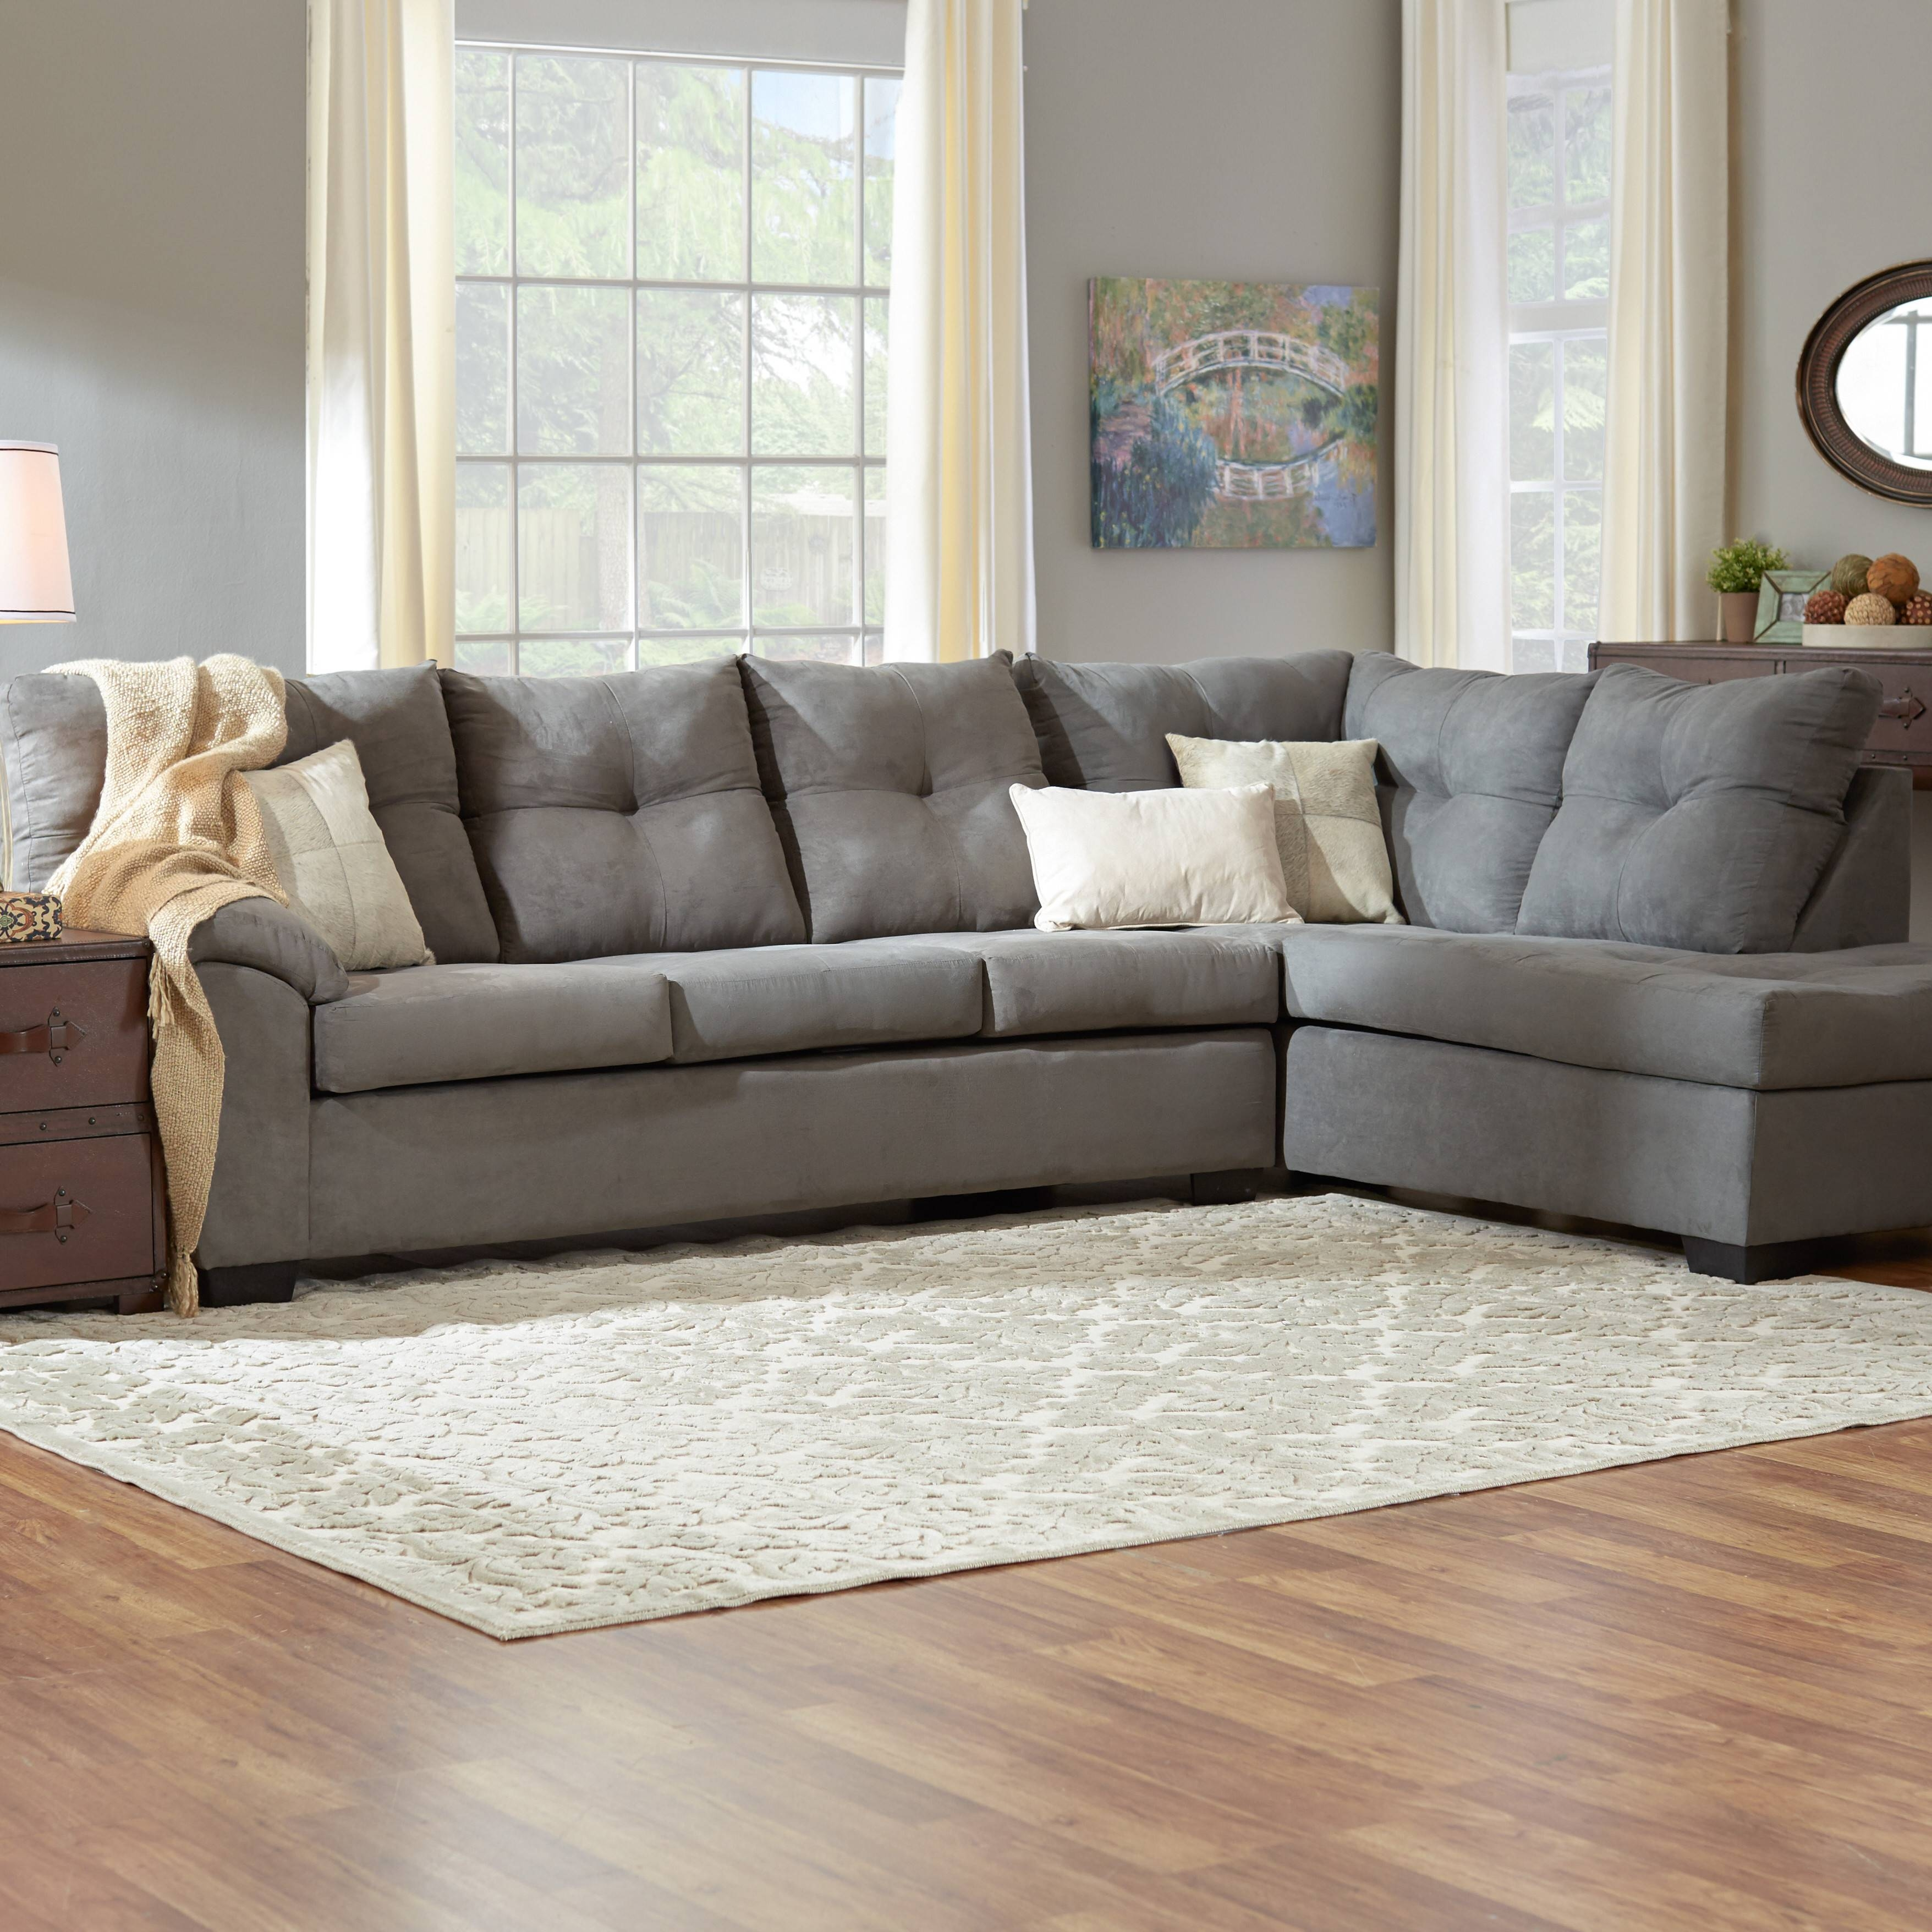 Living Room Affordable Sectional Sofas | Discount Sectional Sofa for Sofas and Sectionals (Image : discount sectionals - Sectionals, Sofas & Couches